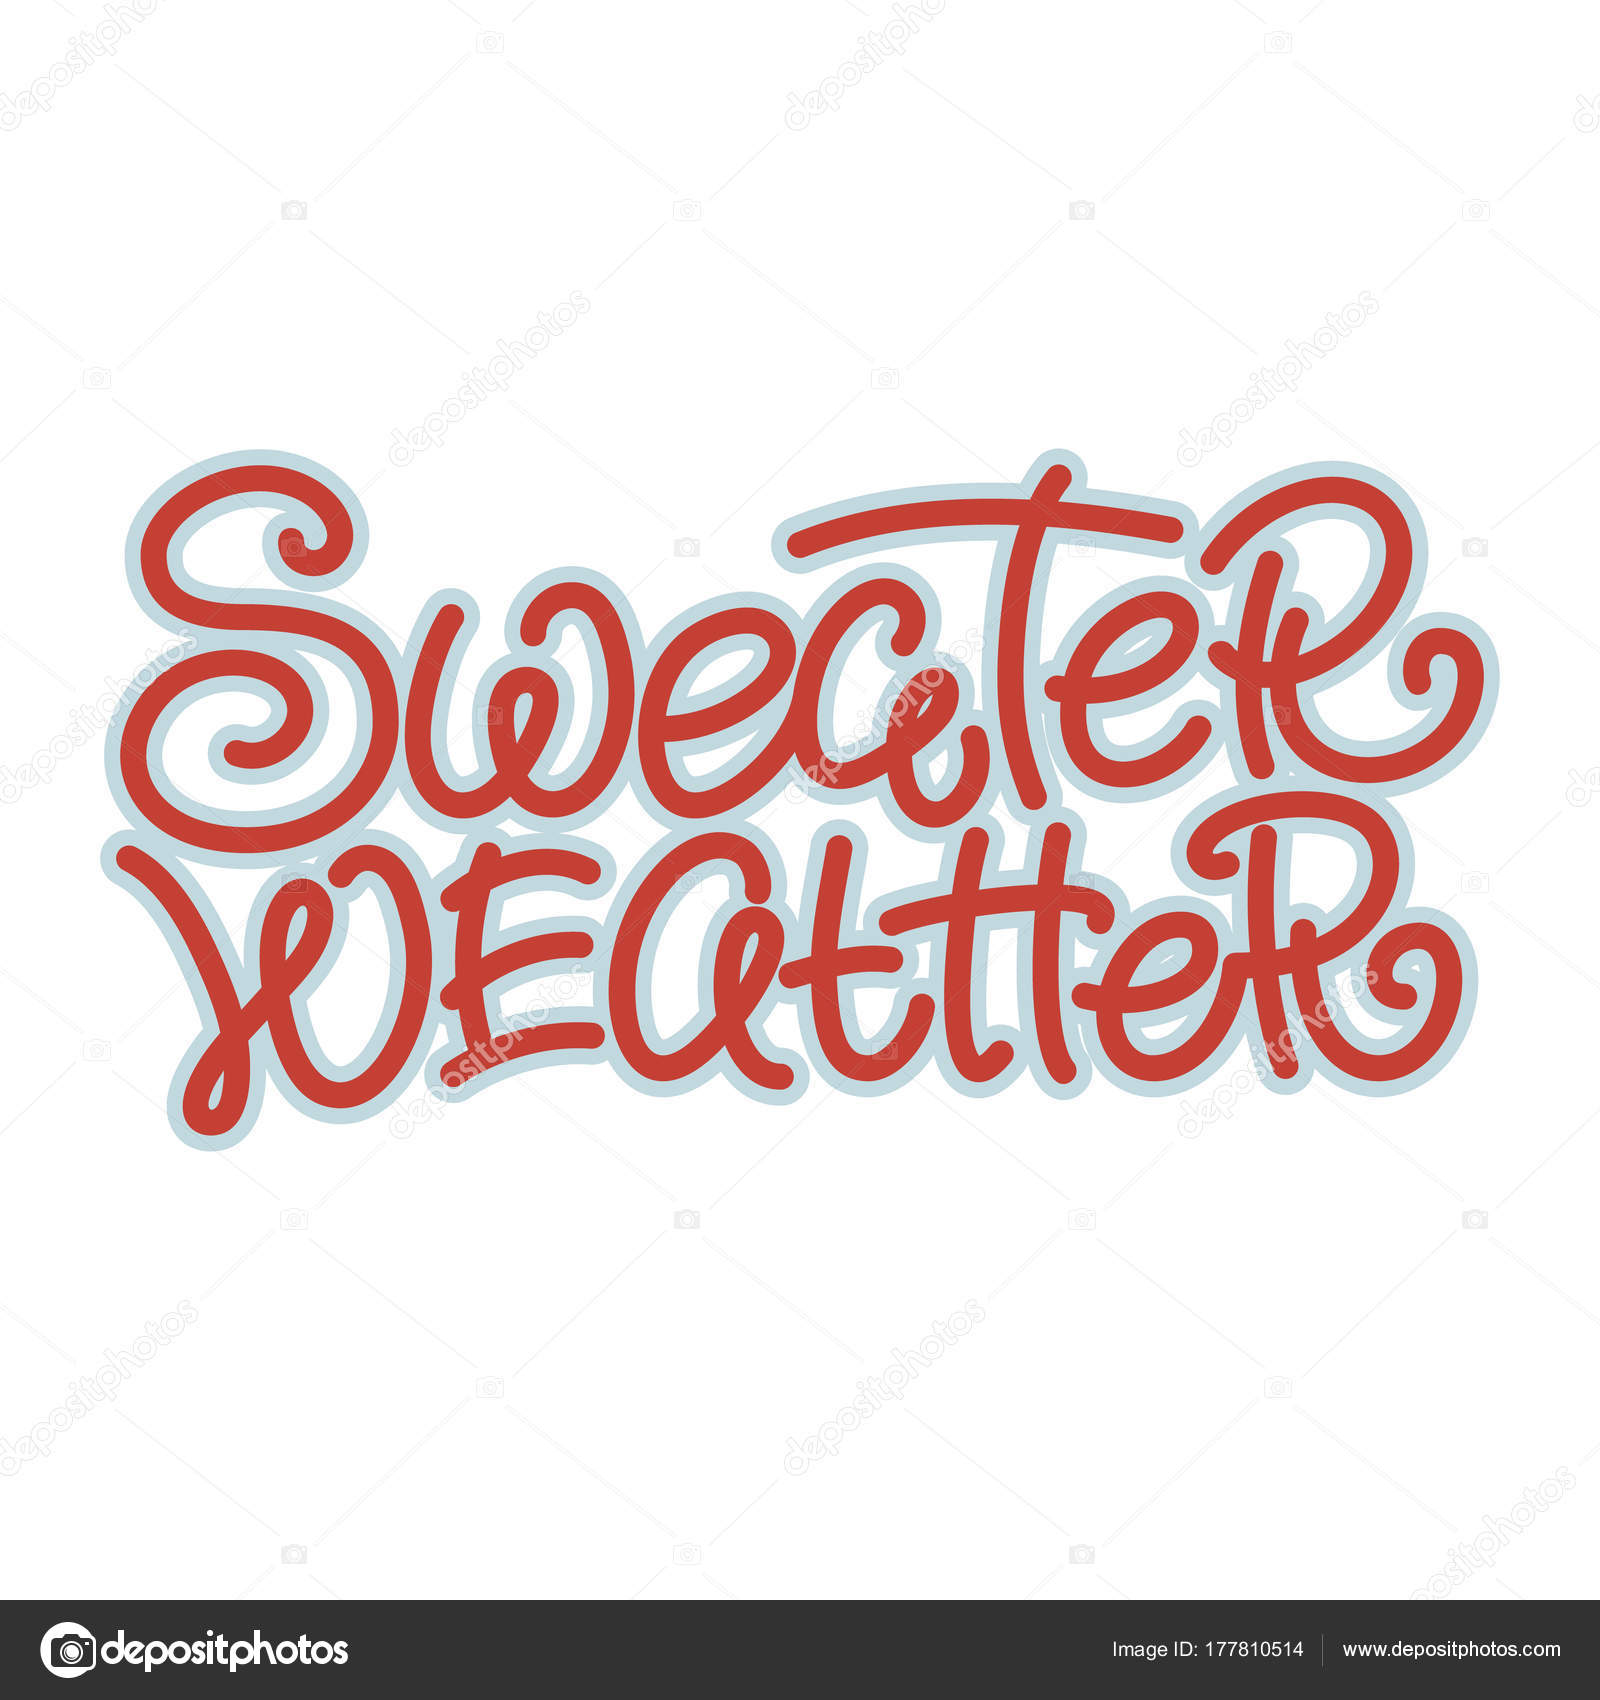 Sweater weather quotes | Sweater Weather text, hand written ...